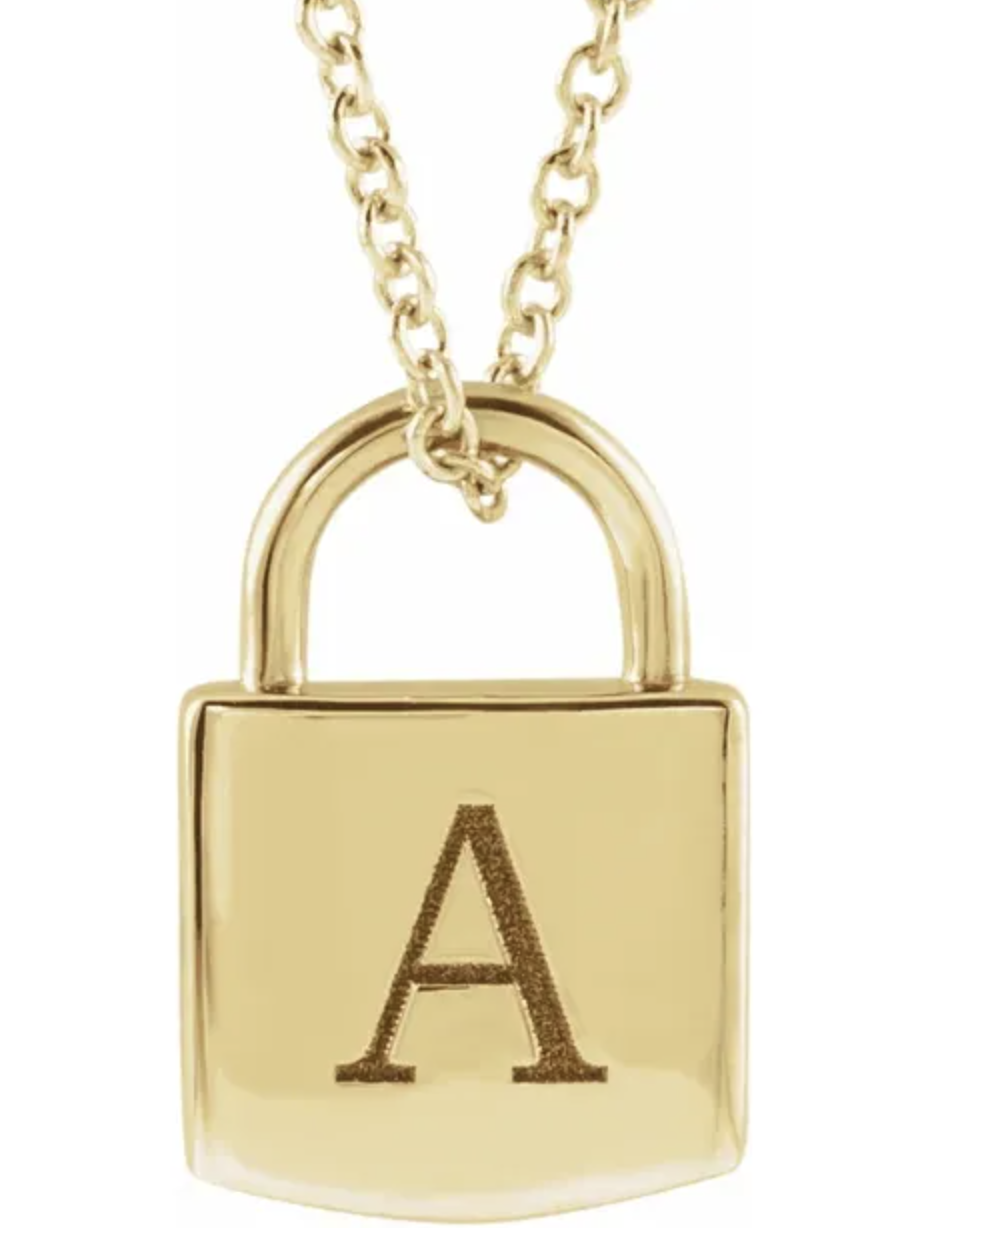 14kt Gold Engravable Lock Necklace